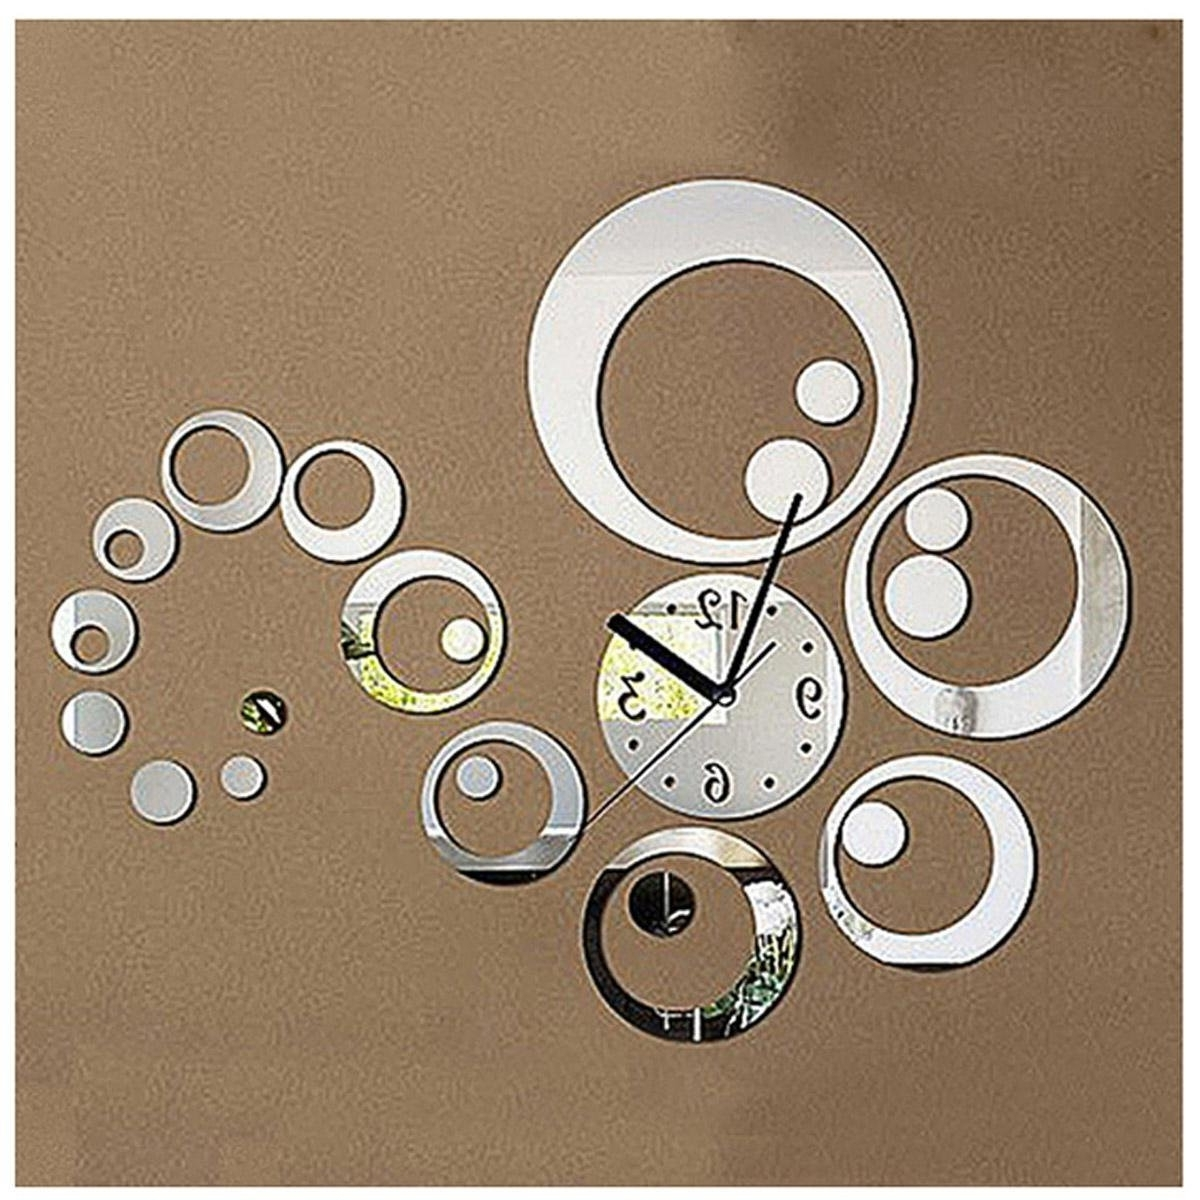 Widely Used String Art Circle Wall Art Geometric Wall Decor Gold Leaf Wall In Circle Wall Art (View 15 of 15)